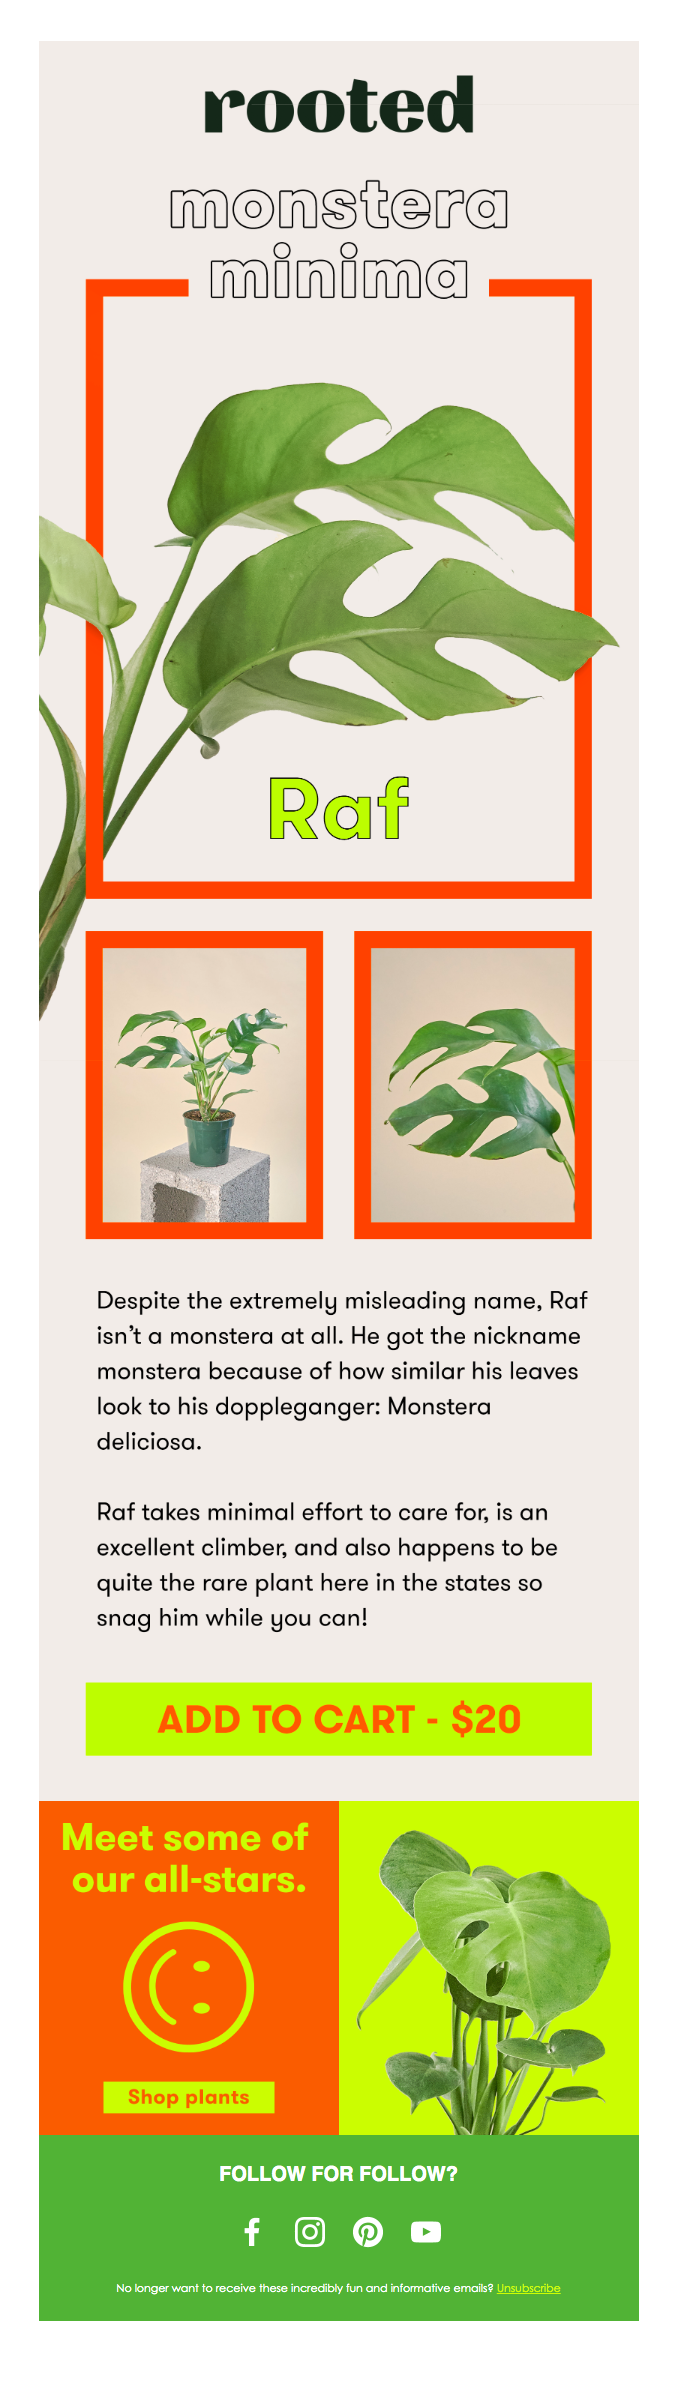 🌱 YOUR MINI MONSTERA IS HERE 🌱